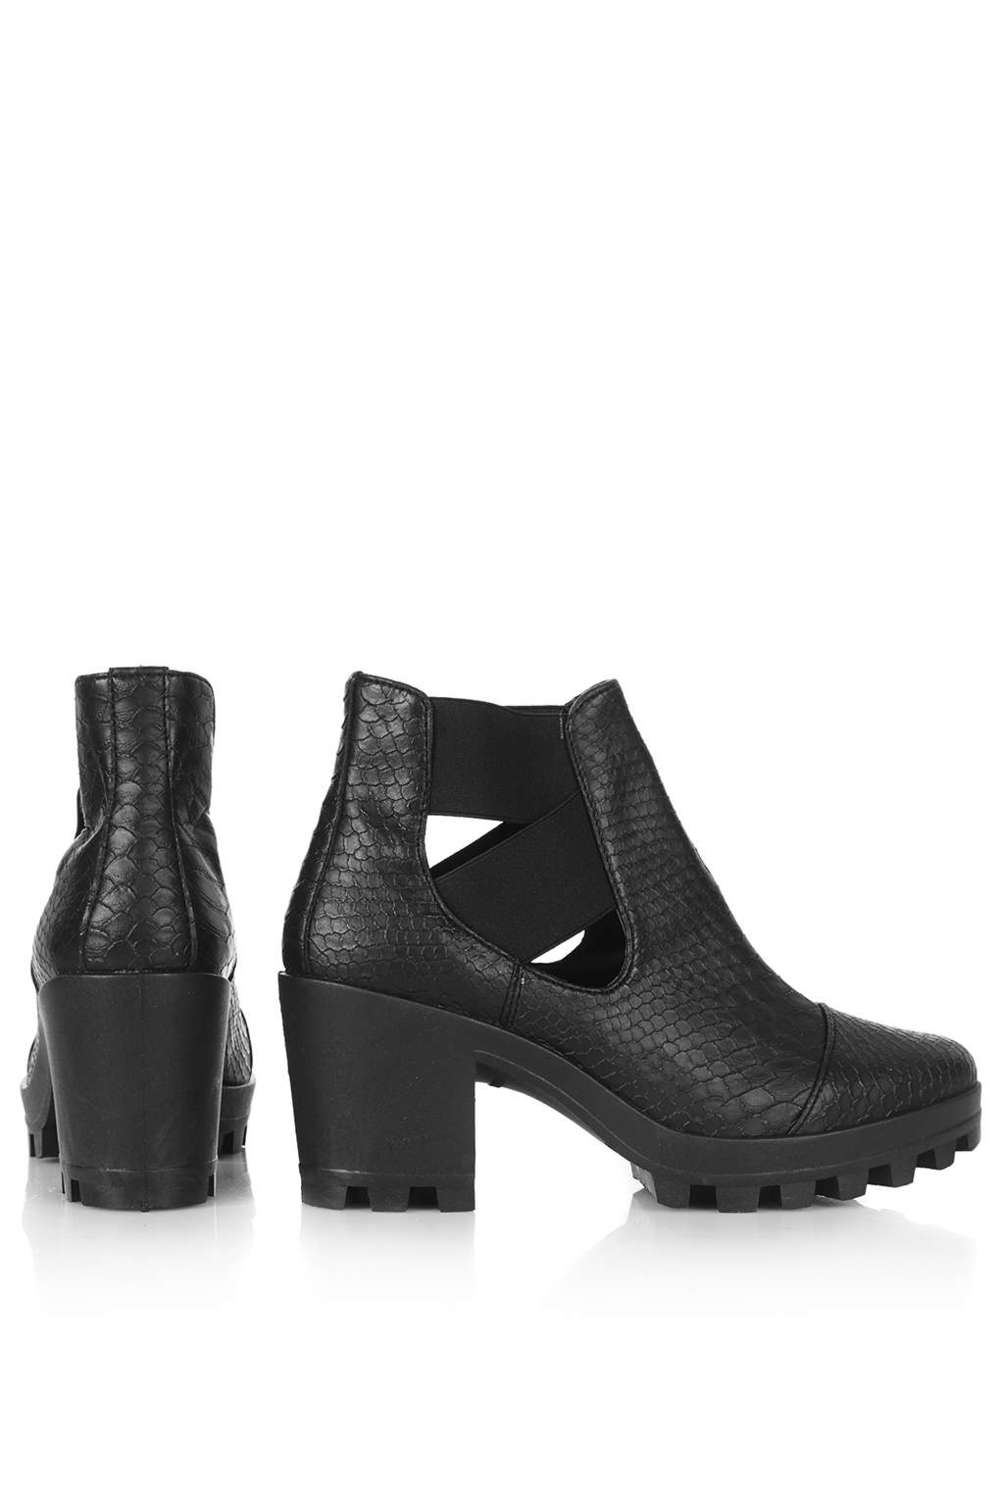 "Topshop ""BOSTON"" cutout boots"